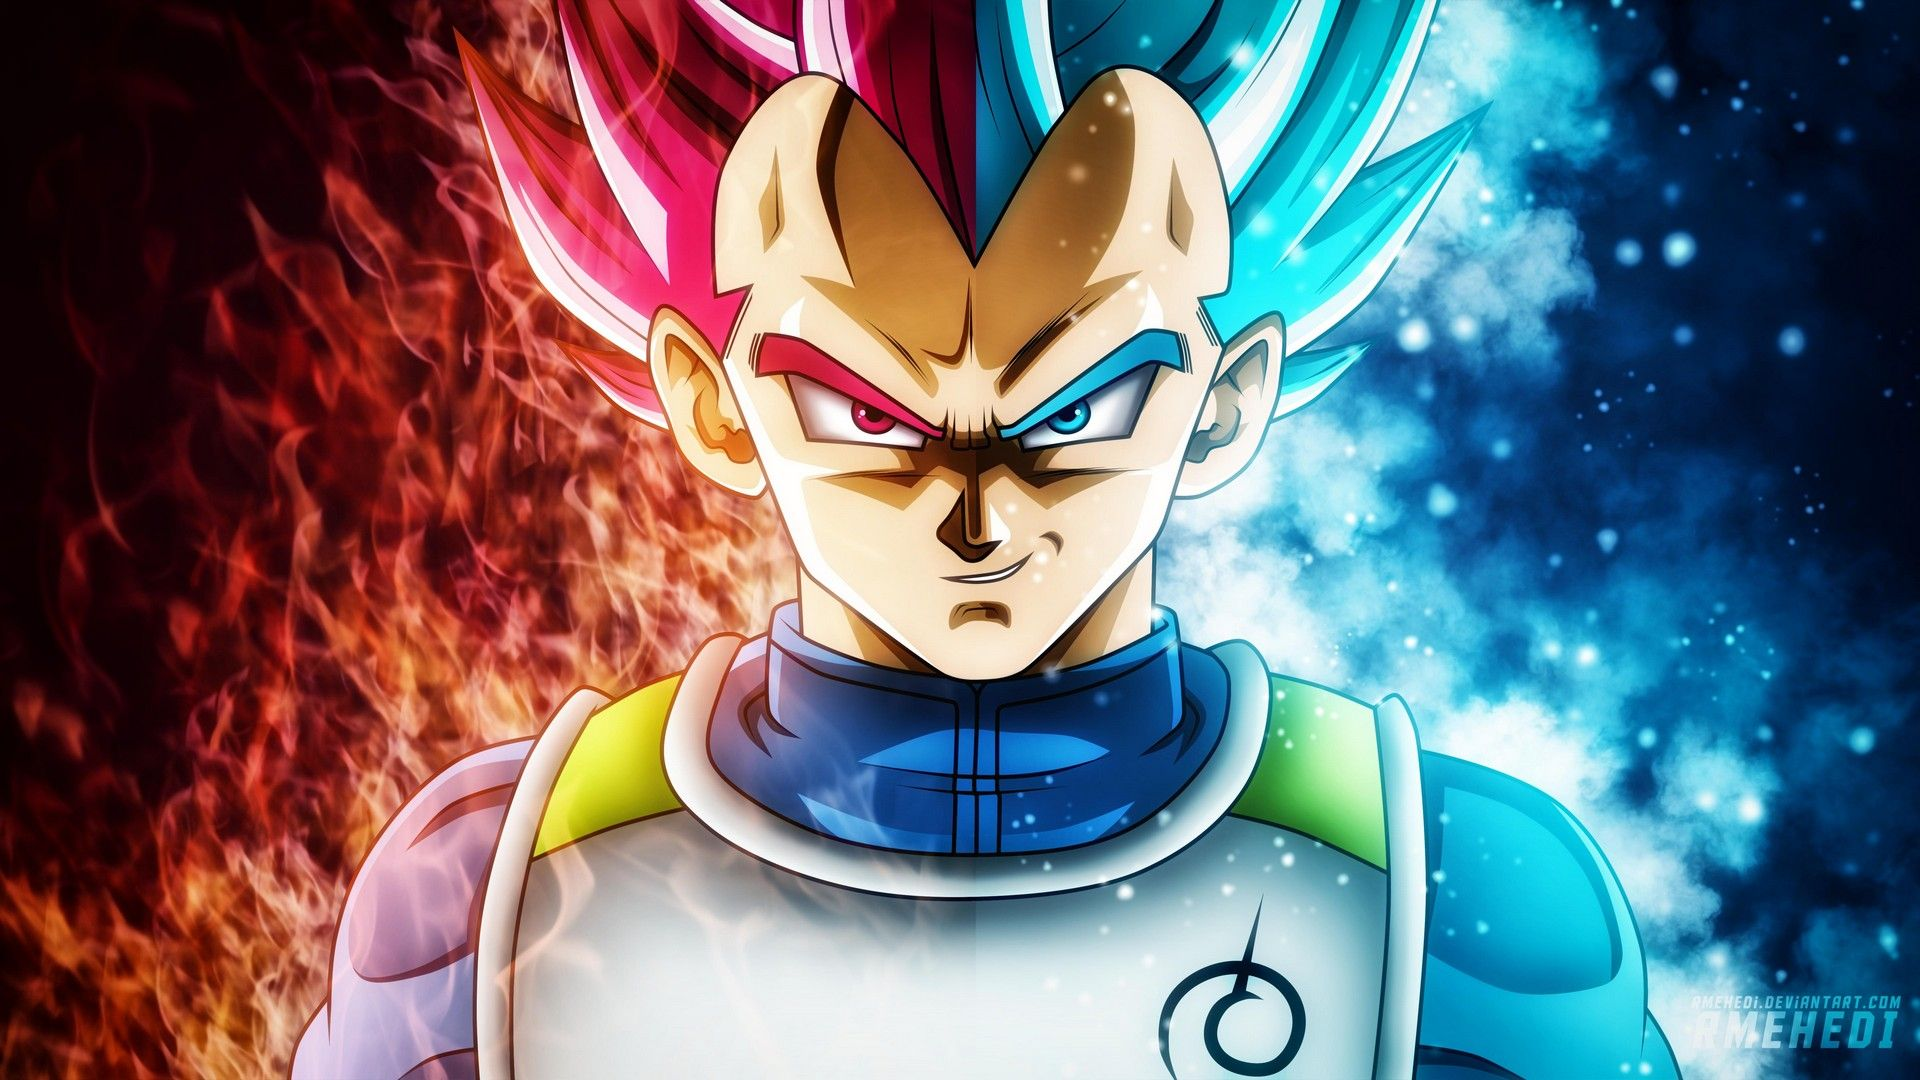 Dragon Ball Super Vegeta Wallpaper 2020 Live Wallpaper Hd Goku Wallpaper Dragon Ball Super Wallpapers Hd Anime Wallpapers